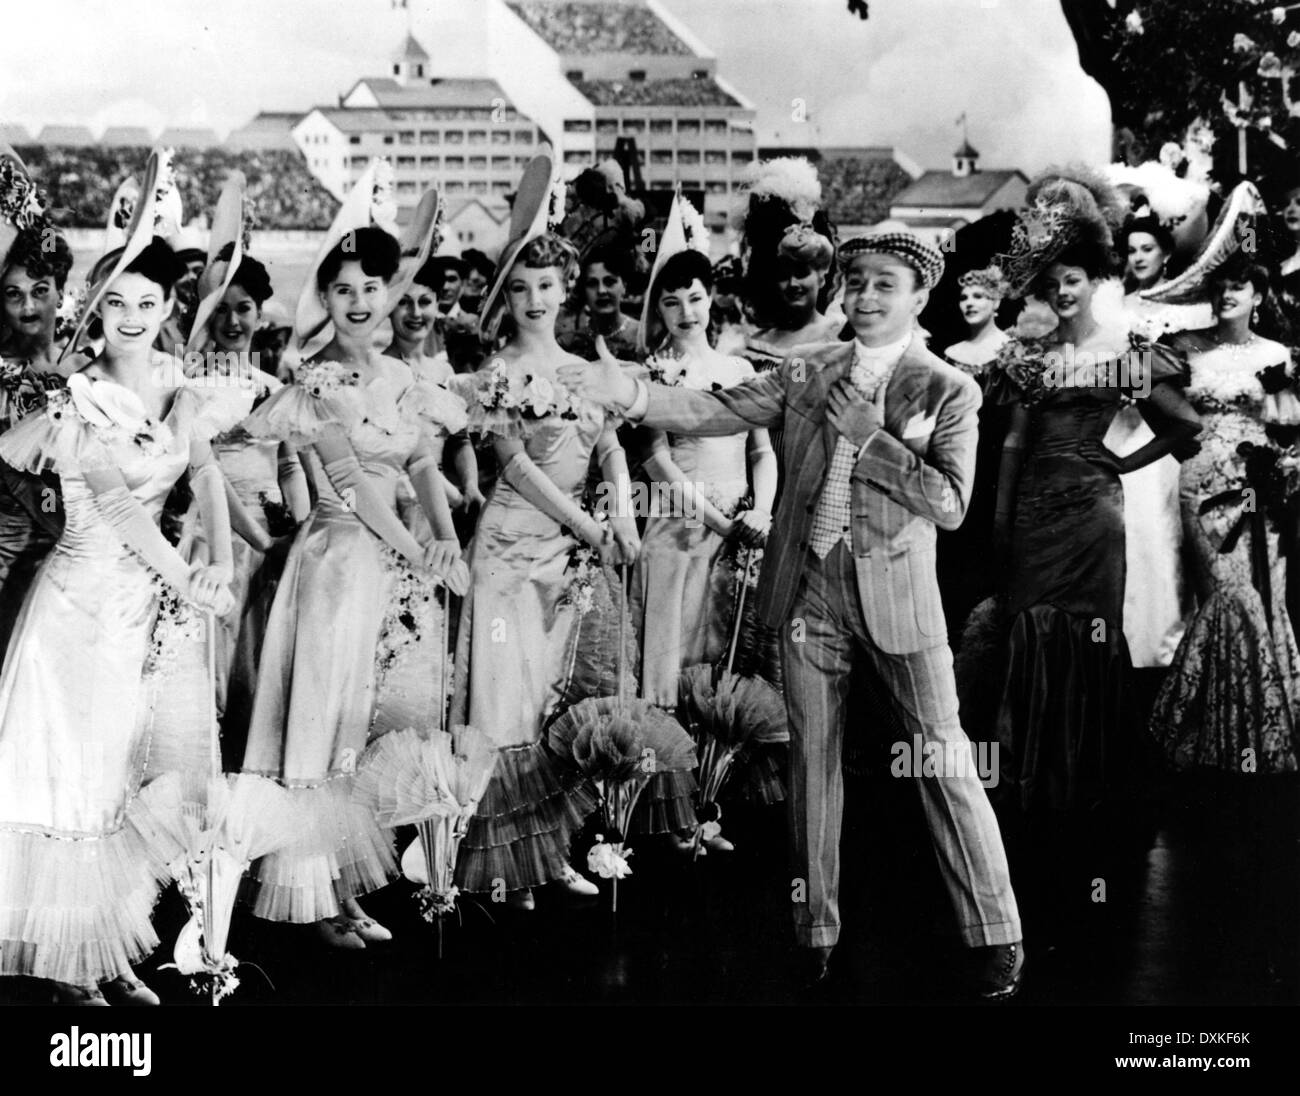 YANKEE DOODLE DANDY (US1942) James Cagney Immagini Stock